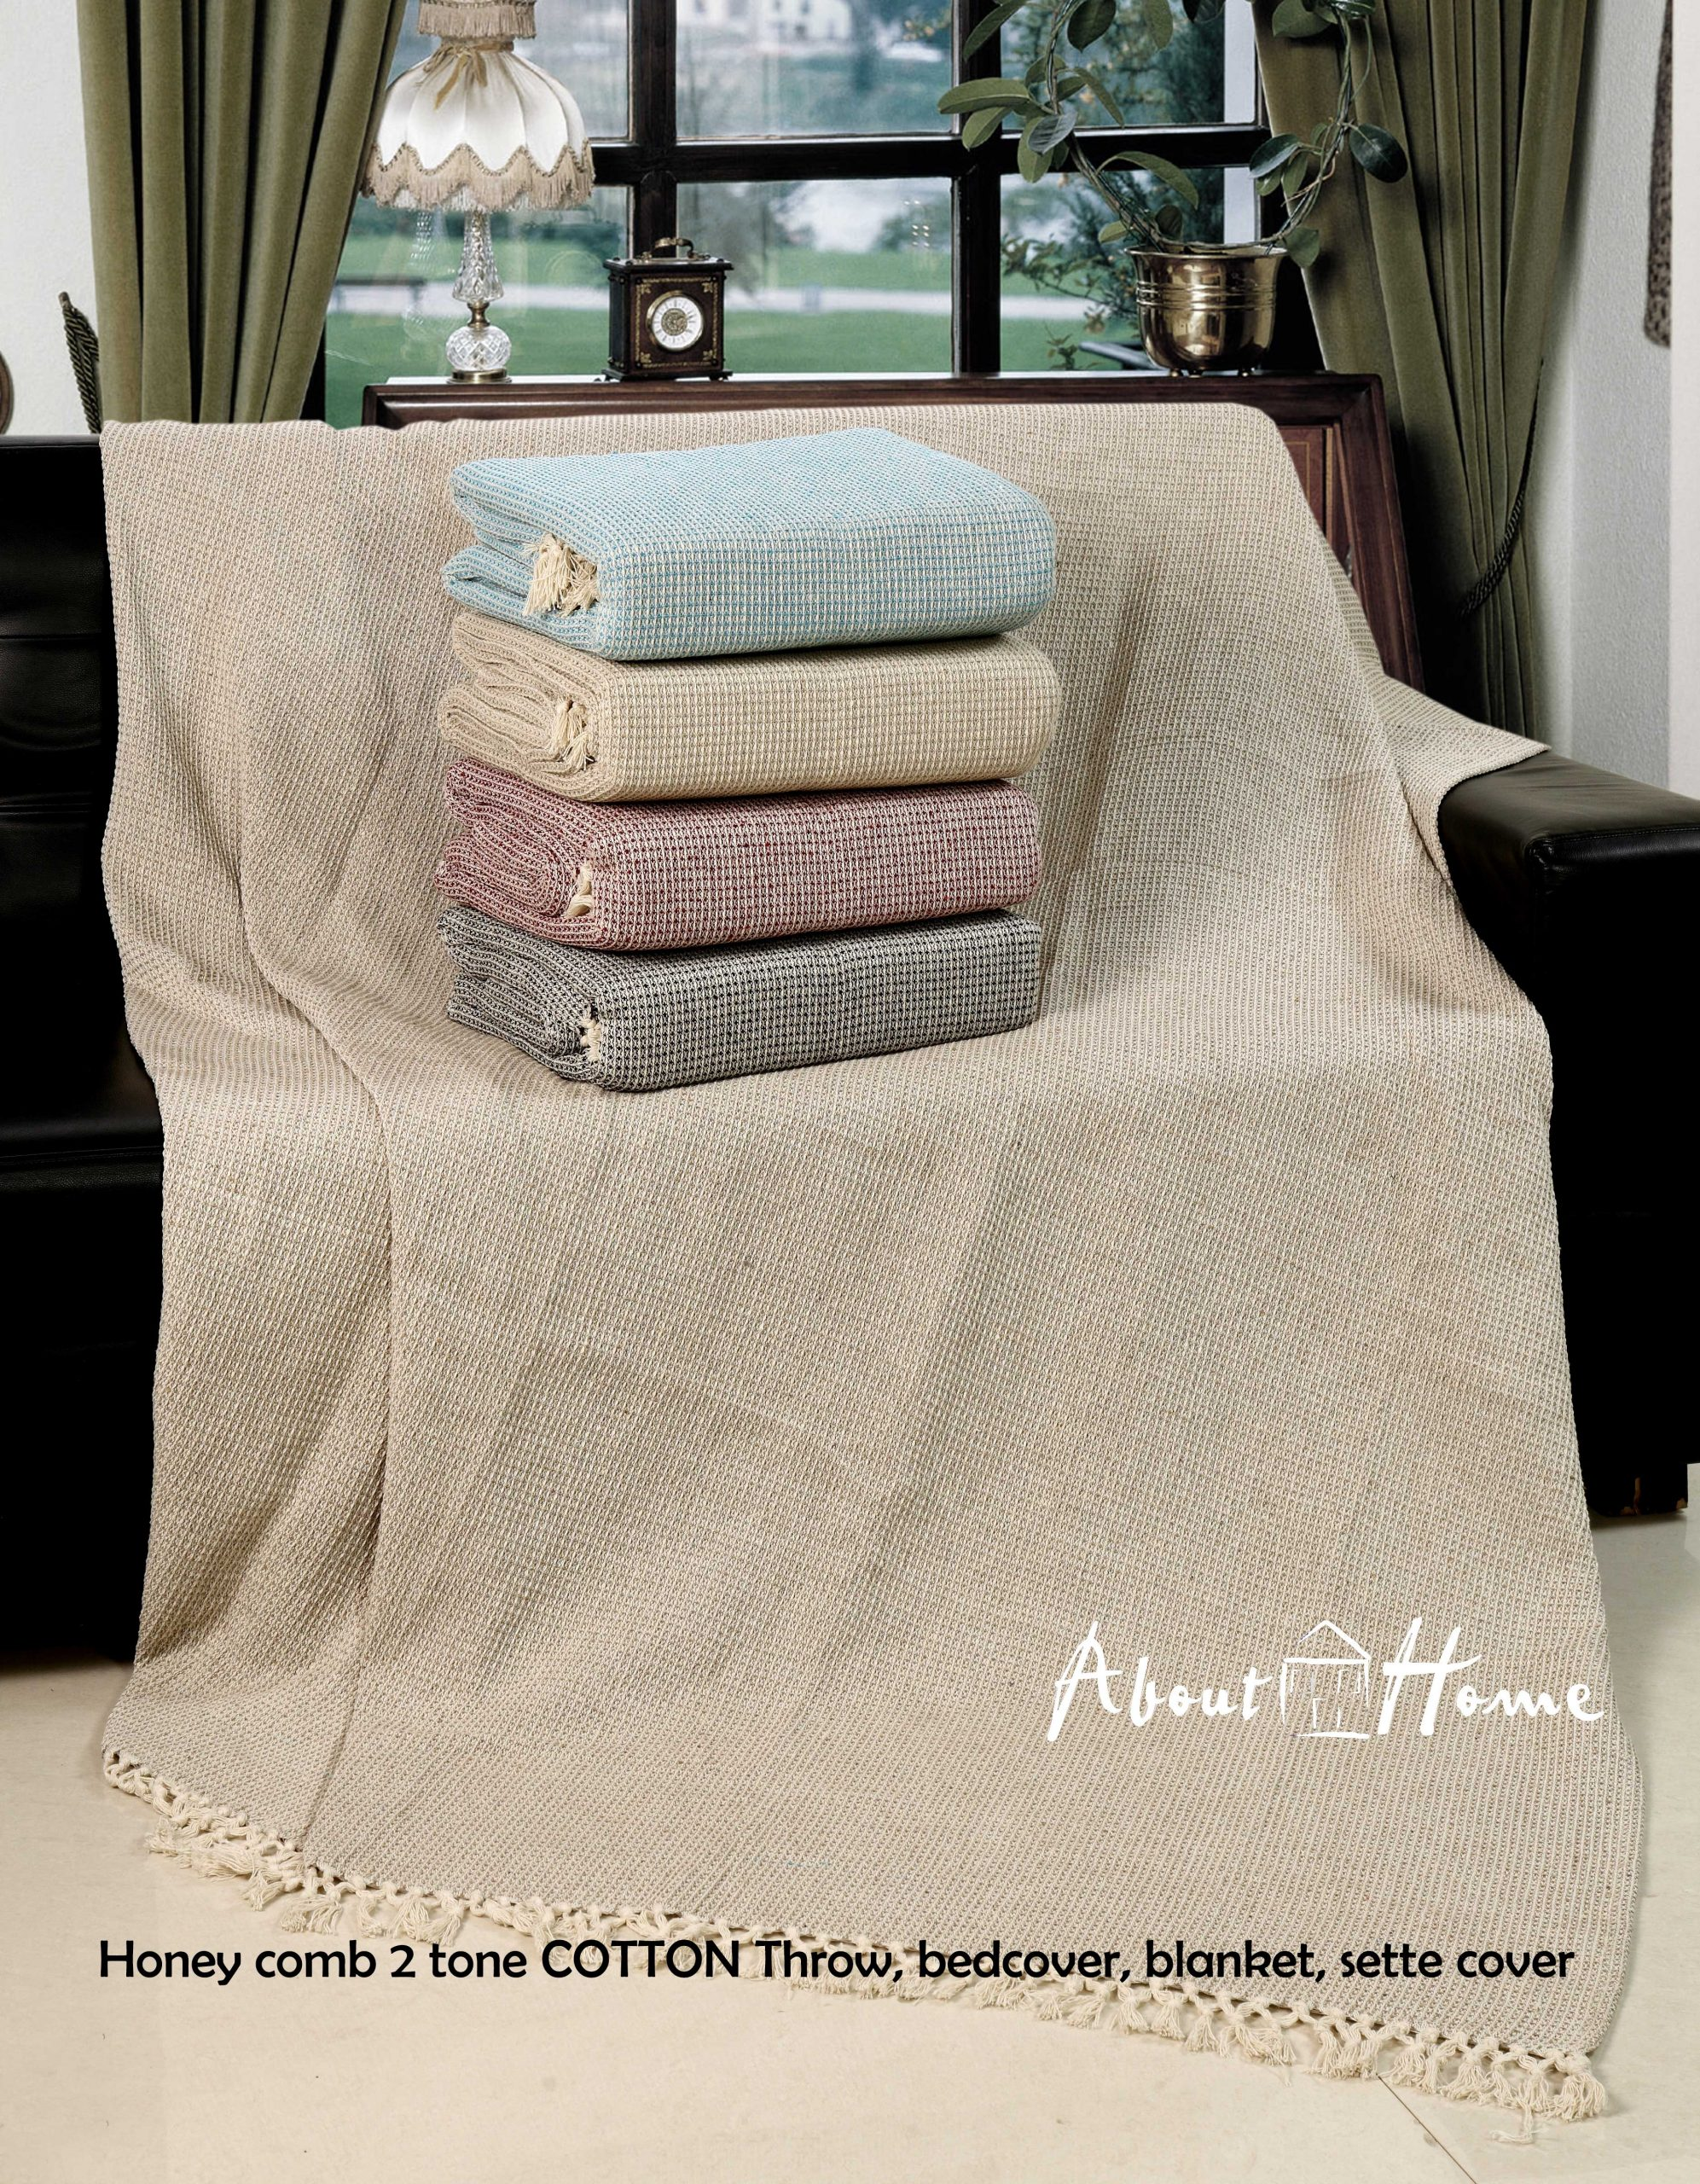 About Home Honeycomb Two Tone Cotton Throws